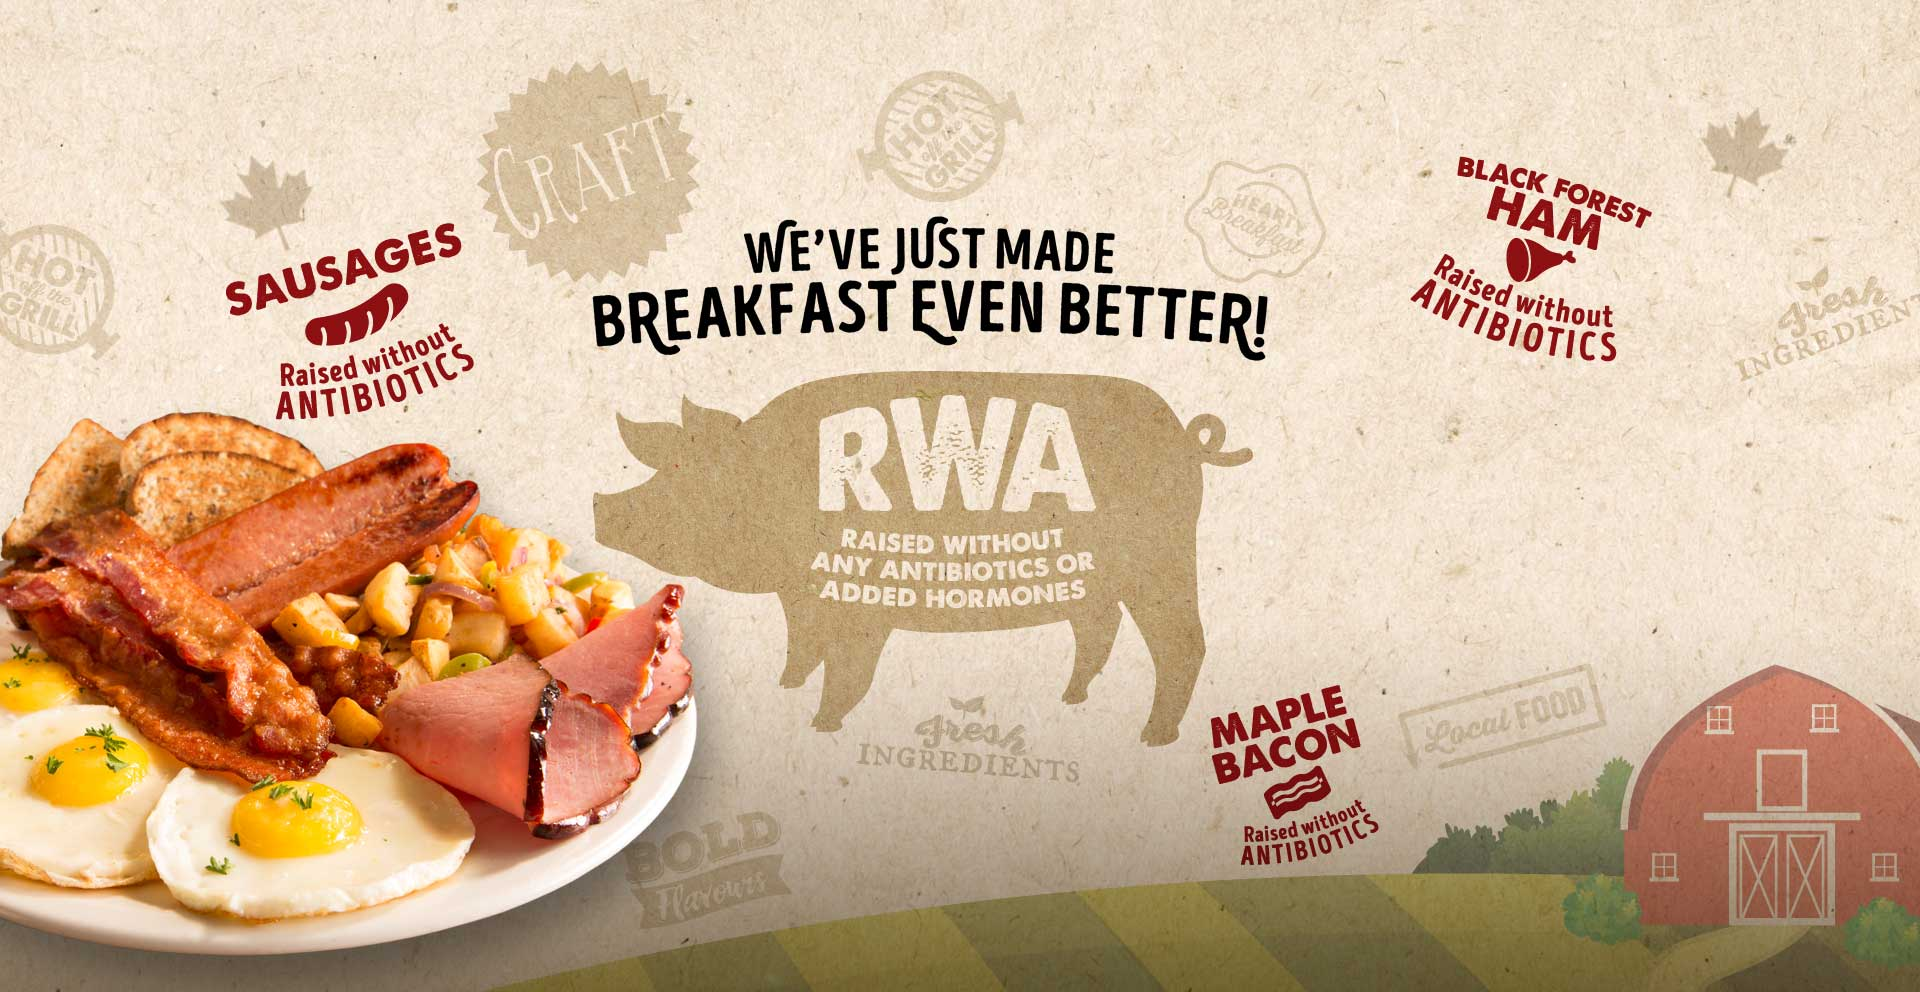 Ricky's is the first family restaurant chain in Canada to commit to breakfast meats raised without any antibiotics or added hormones, ever!